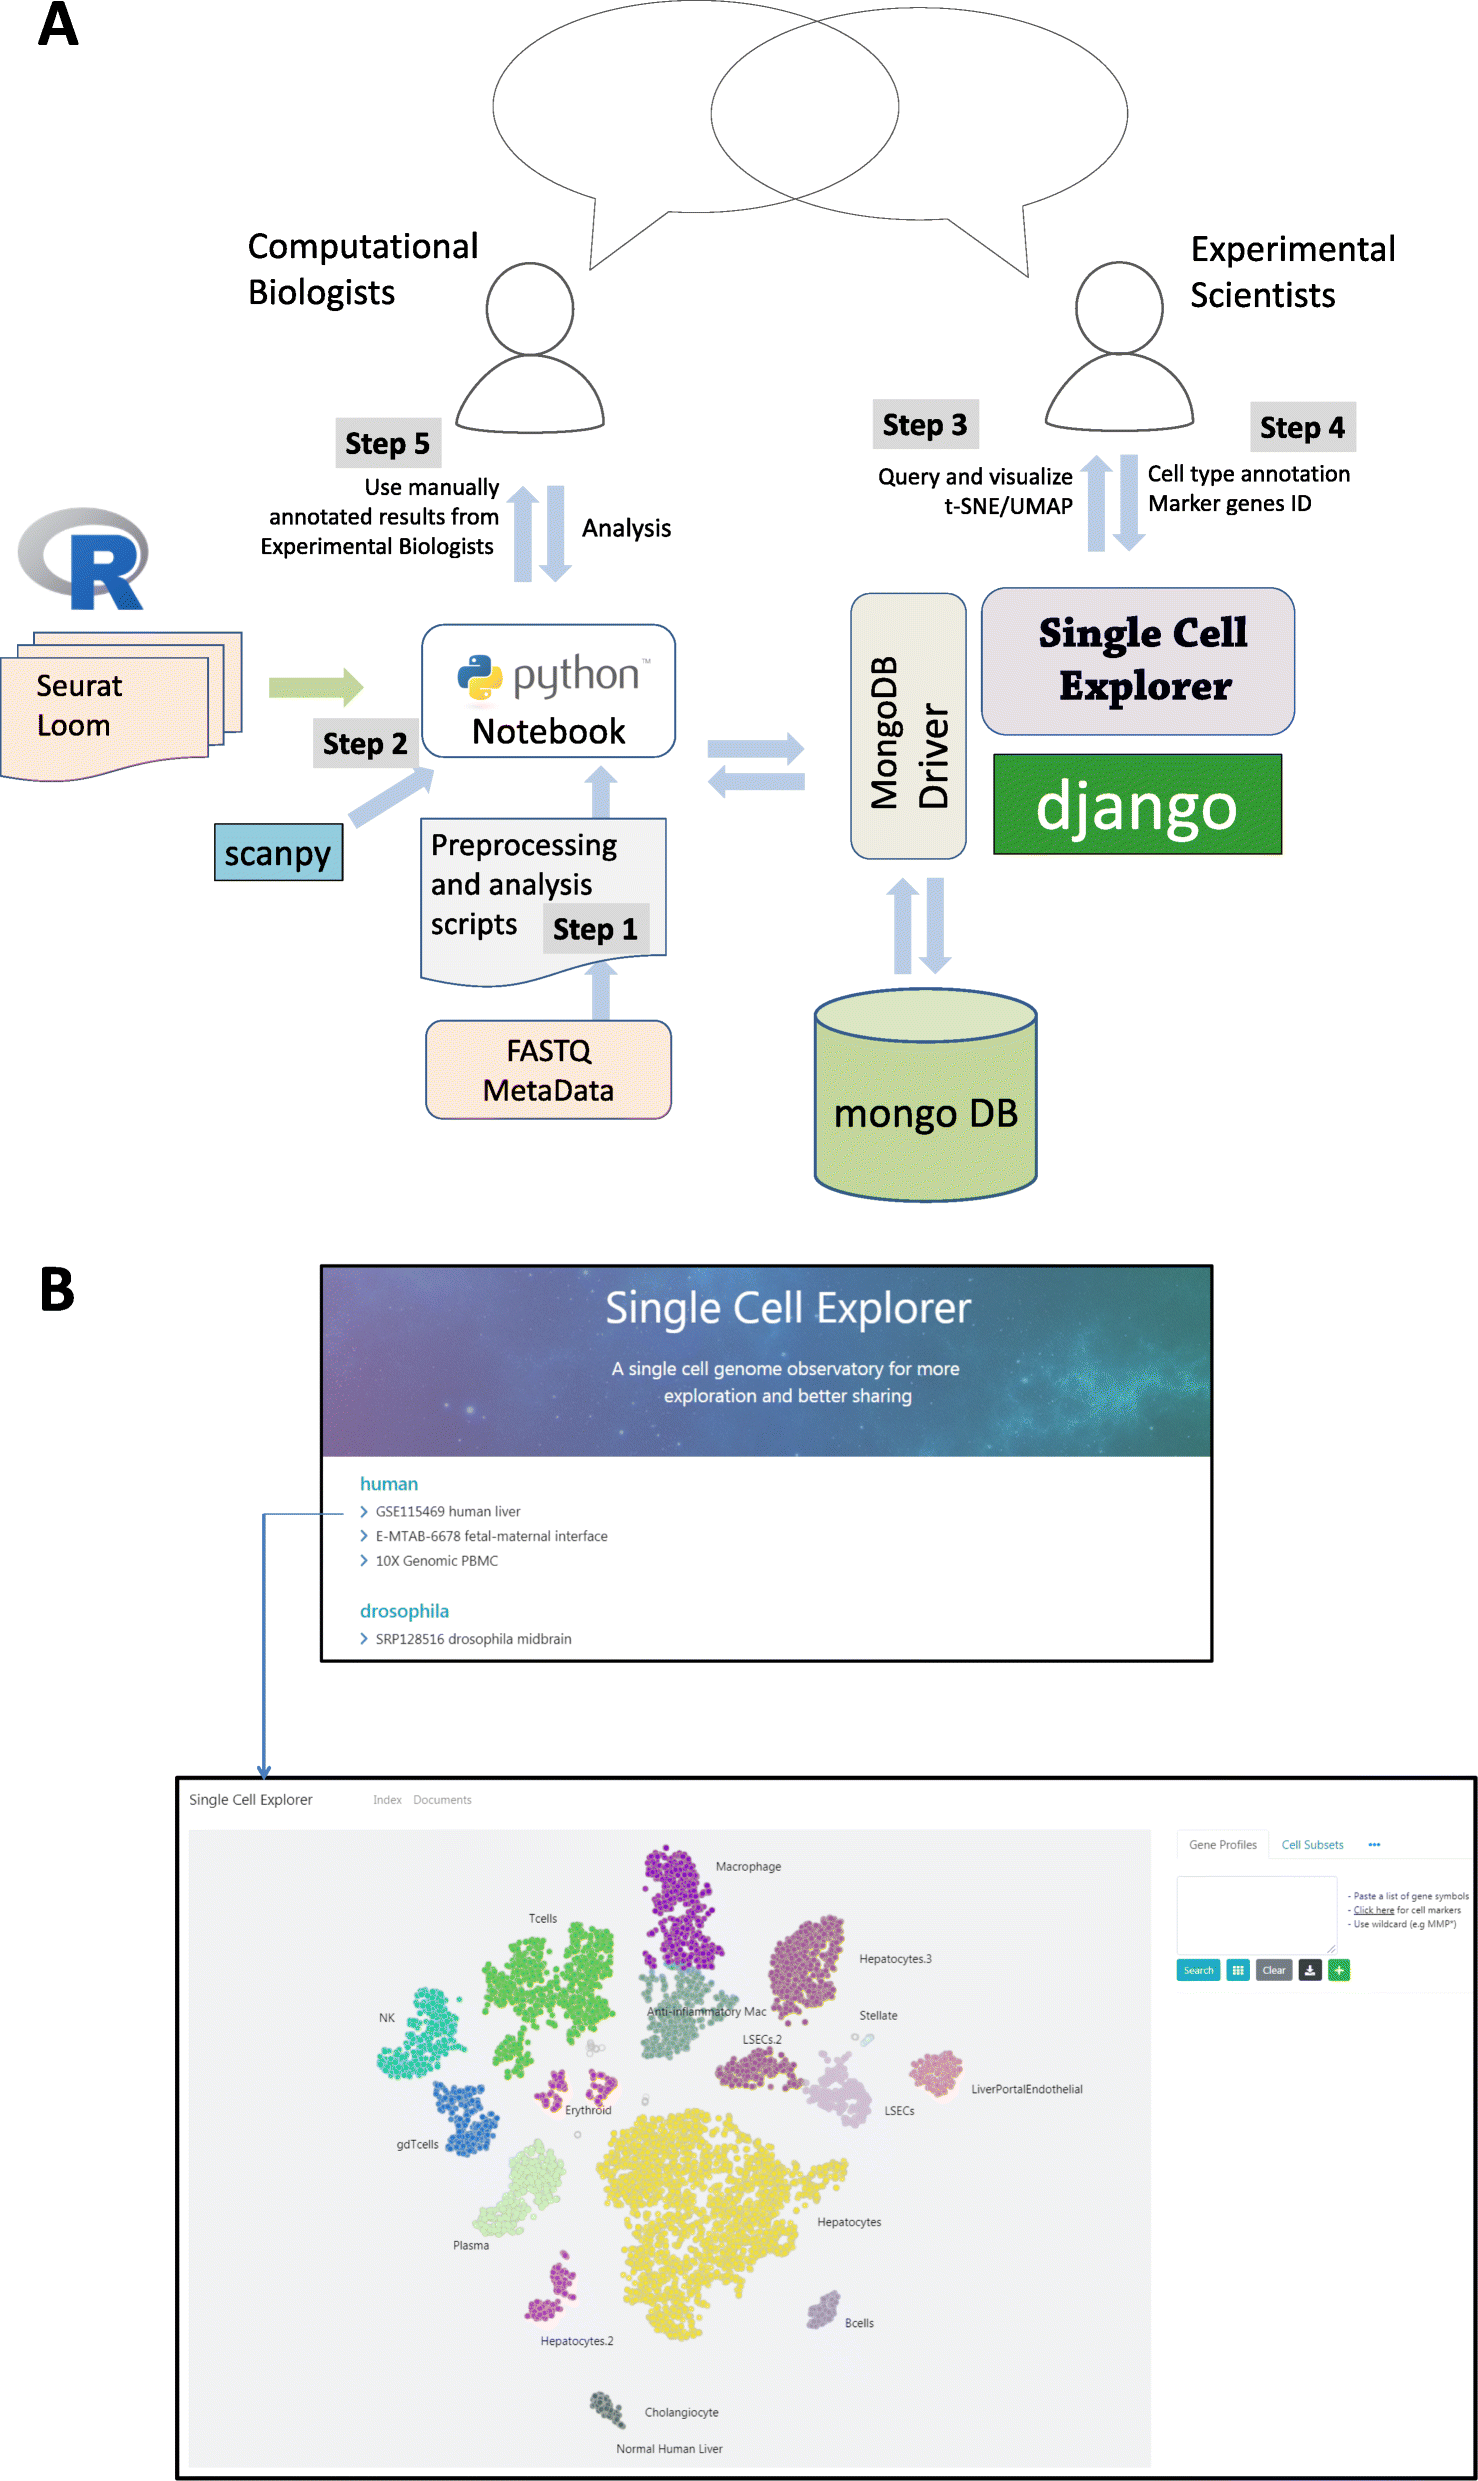 Single Cell Explorer, collaboration-driven tools to leverage